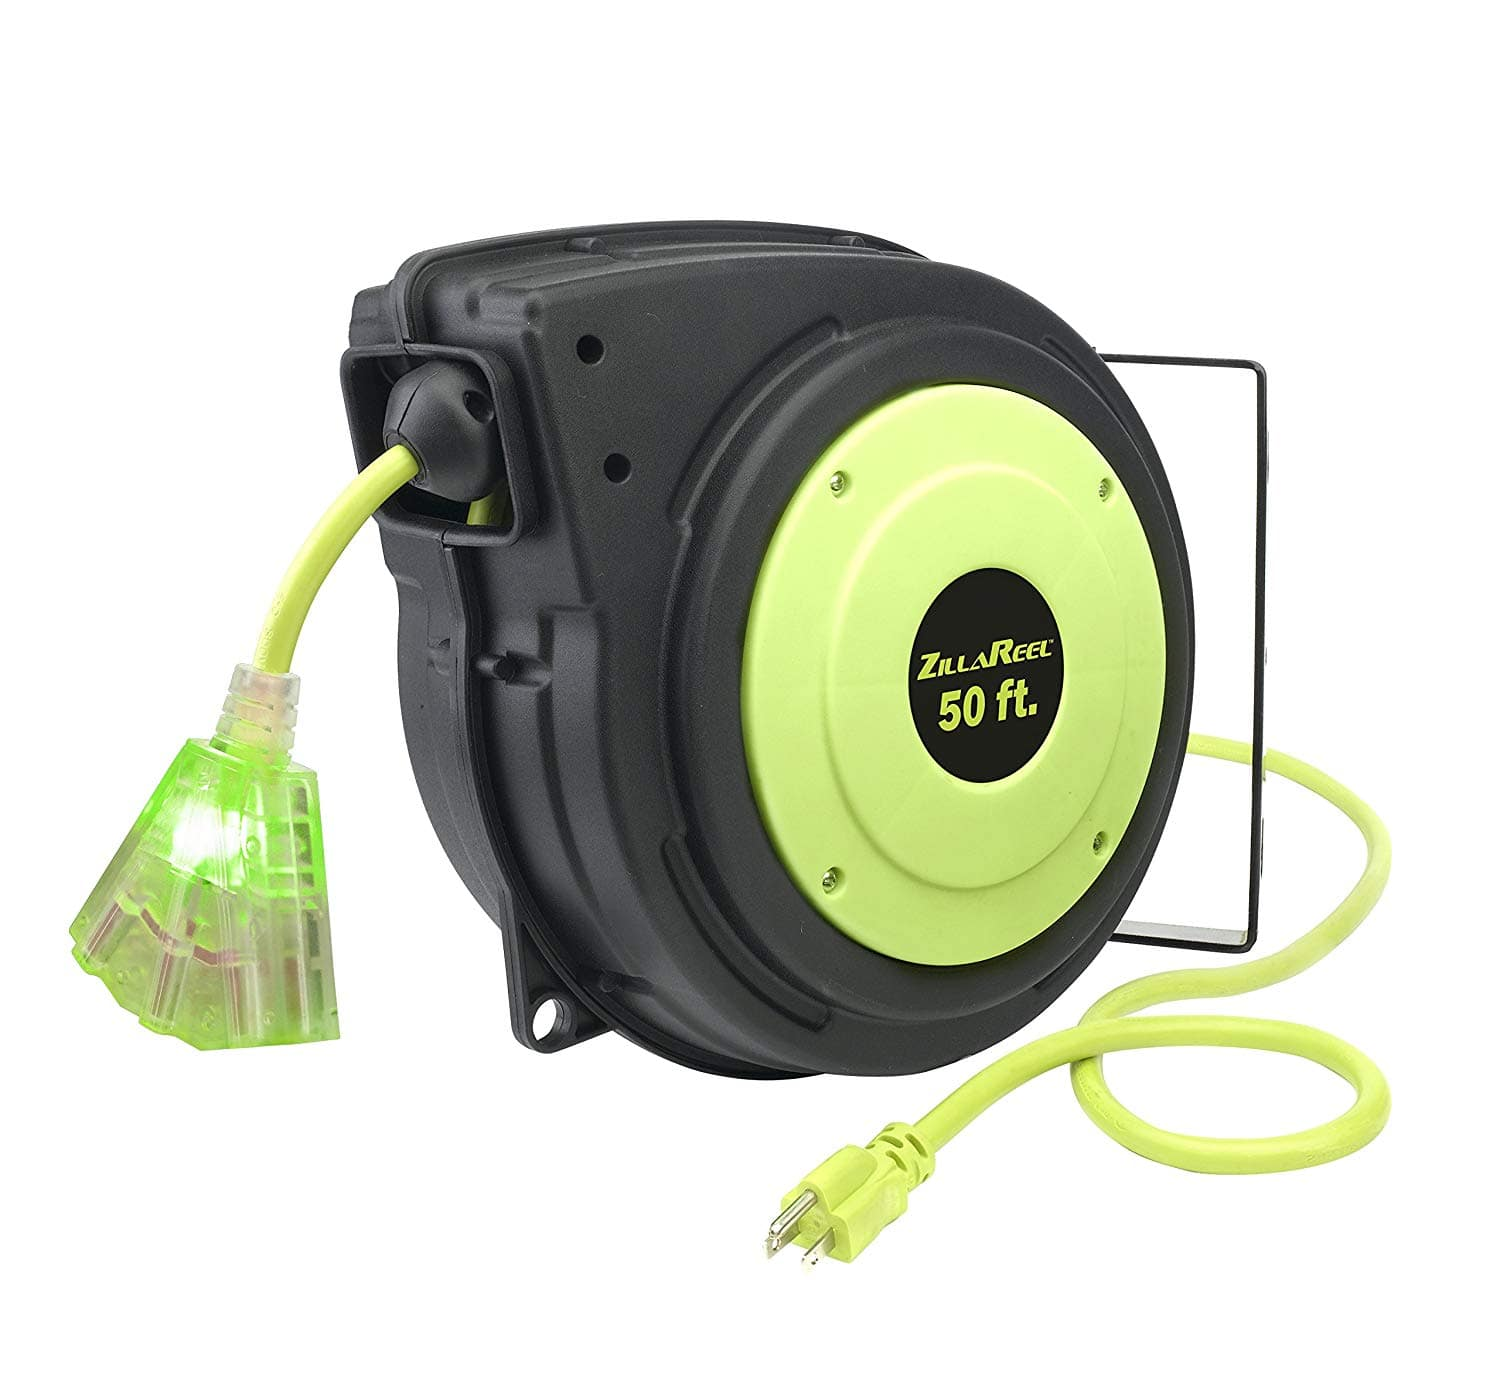 Back in stock - Amazon -  Flexzilla ZillaReel 50 ft. Retractable Extension Cord Reel - E8140503 - $49.81 (58% off) (reposting of my own deal)